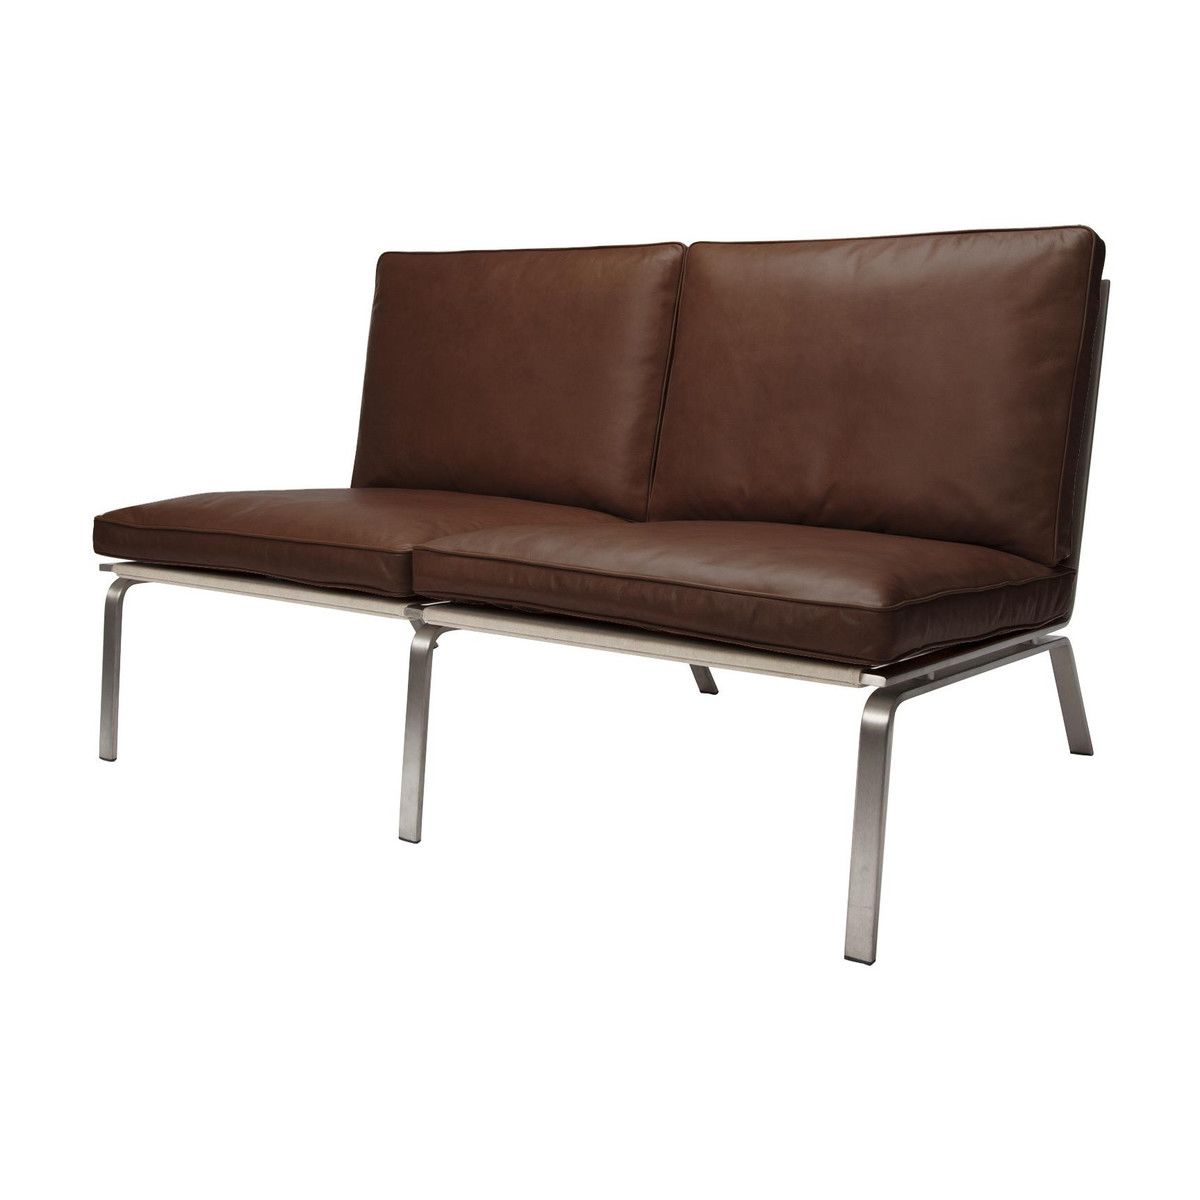 Lounge sofa leder  Man Lounge 2-Seater Sofa | NORR 11 | AmbienteDirect.com